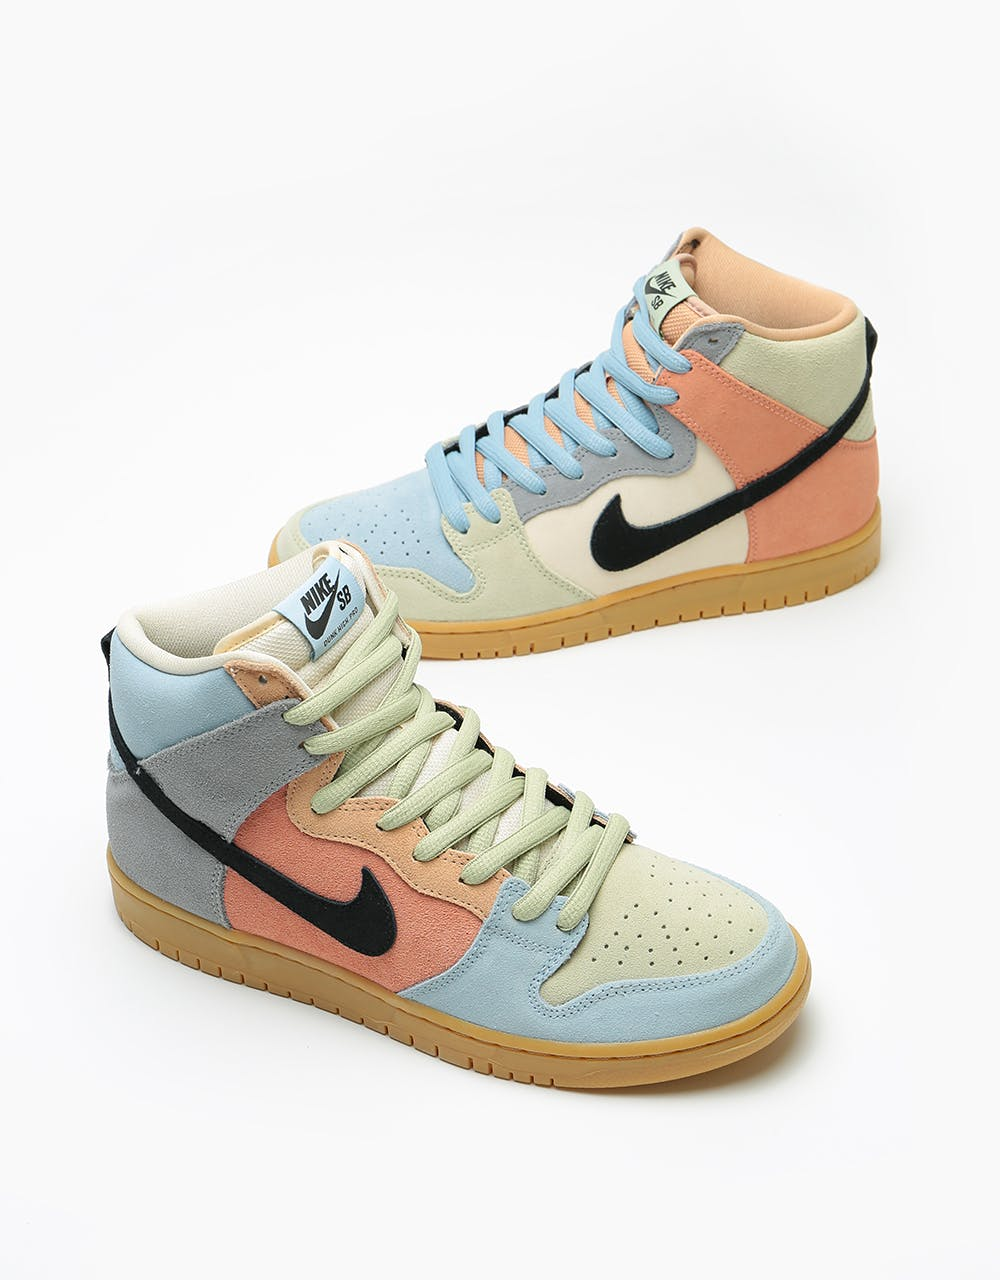 nike-sb-dunk-high-easter-spectrum-cn8345-001-release-20200131